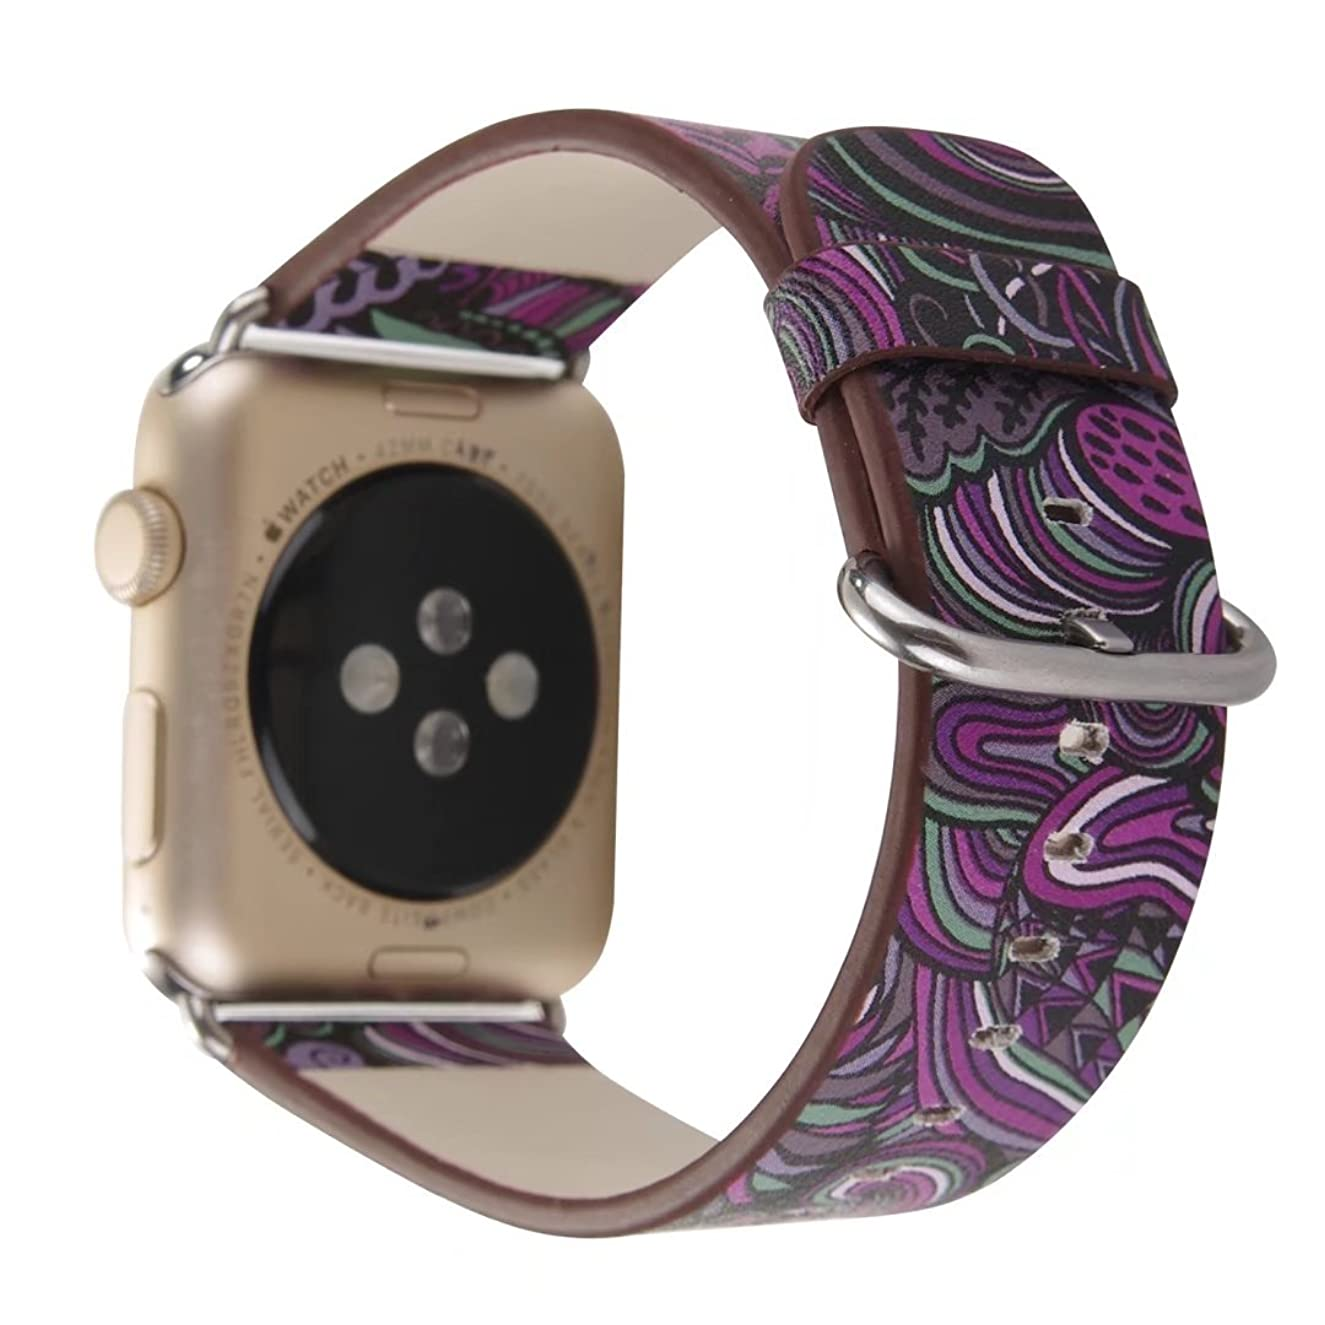 Ginamart Genuine Leather Flower Pattern Watch Bangle Bracelet Replacement Band Iwatch Strap for Apple Watch 38mm/42mm iWatch (Purple 38mm)